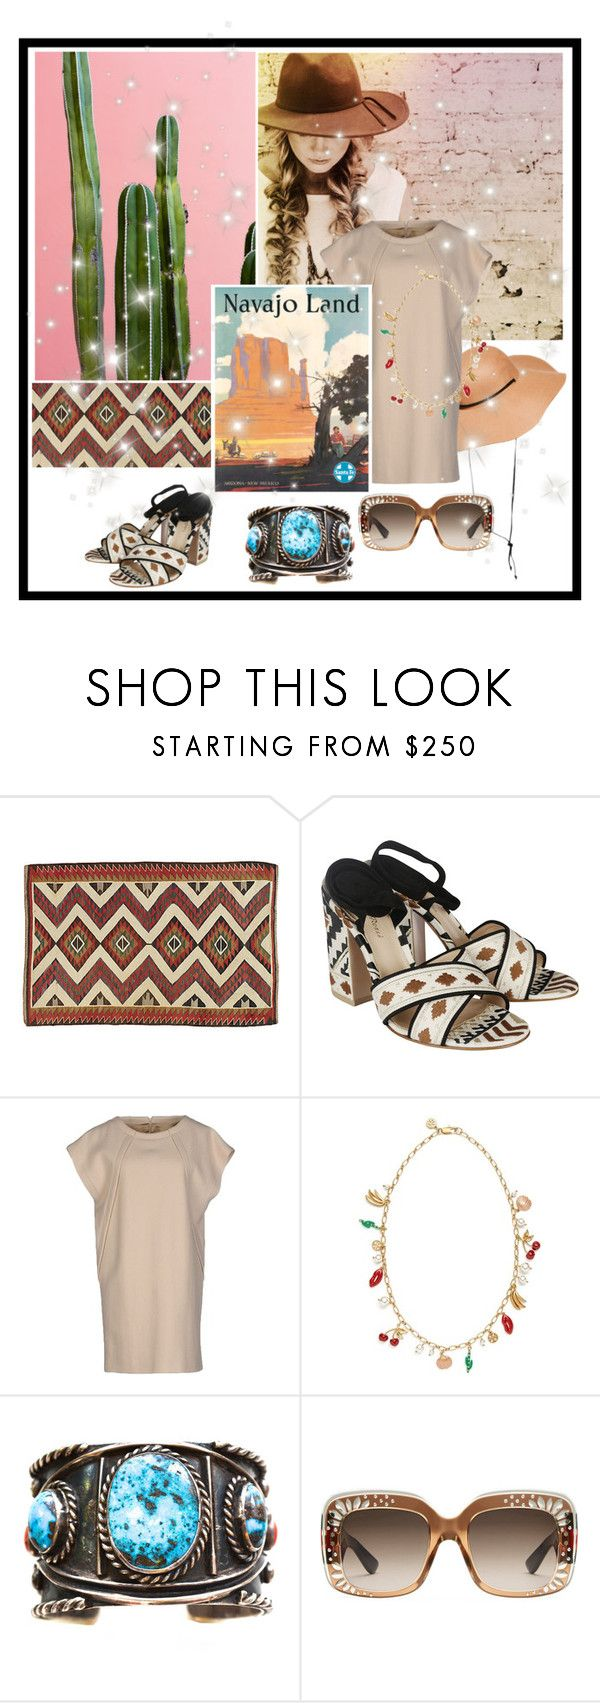 """Santa Fe"" by itgirl2010 ❤ liked on Polyvore featuring H&M, Gianvito Rossi, Maison Margiela, Tory Burch, Gucci and hatcontest"